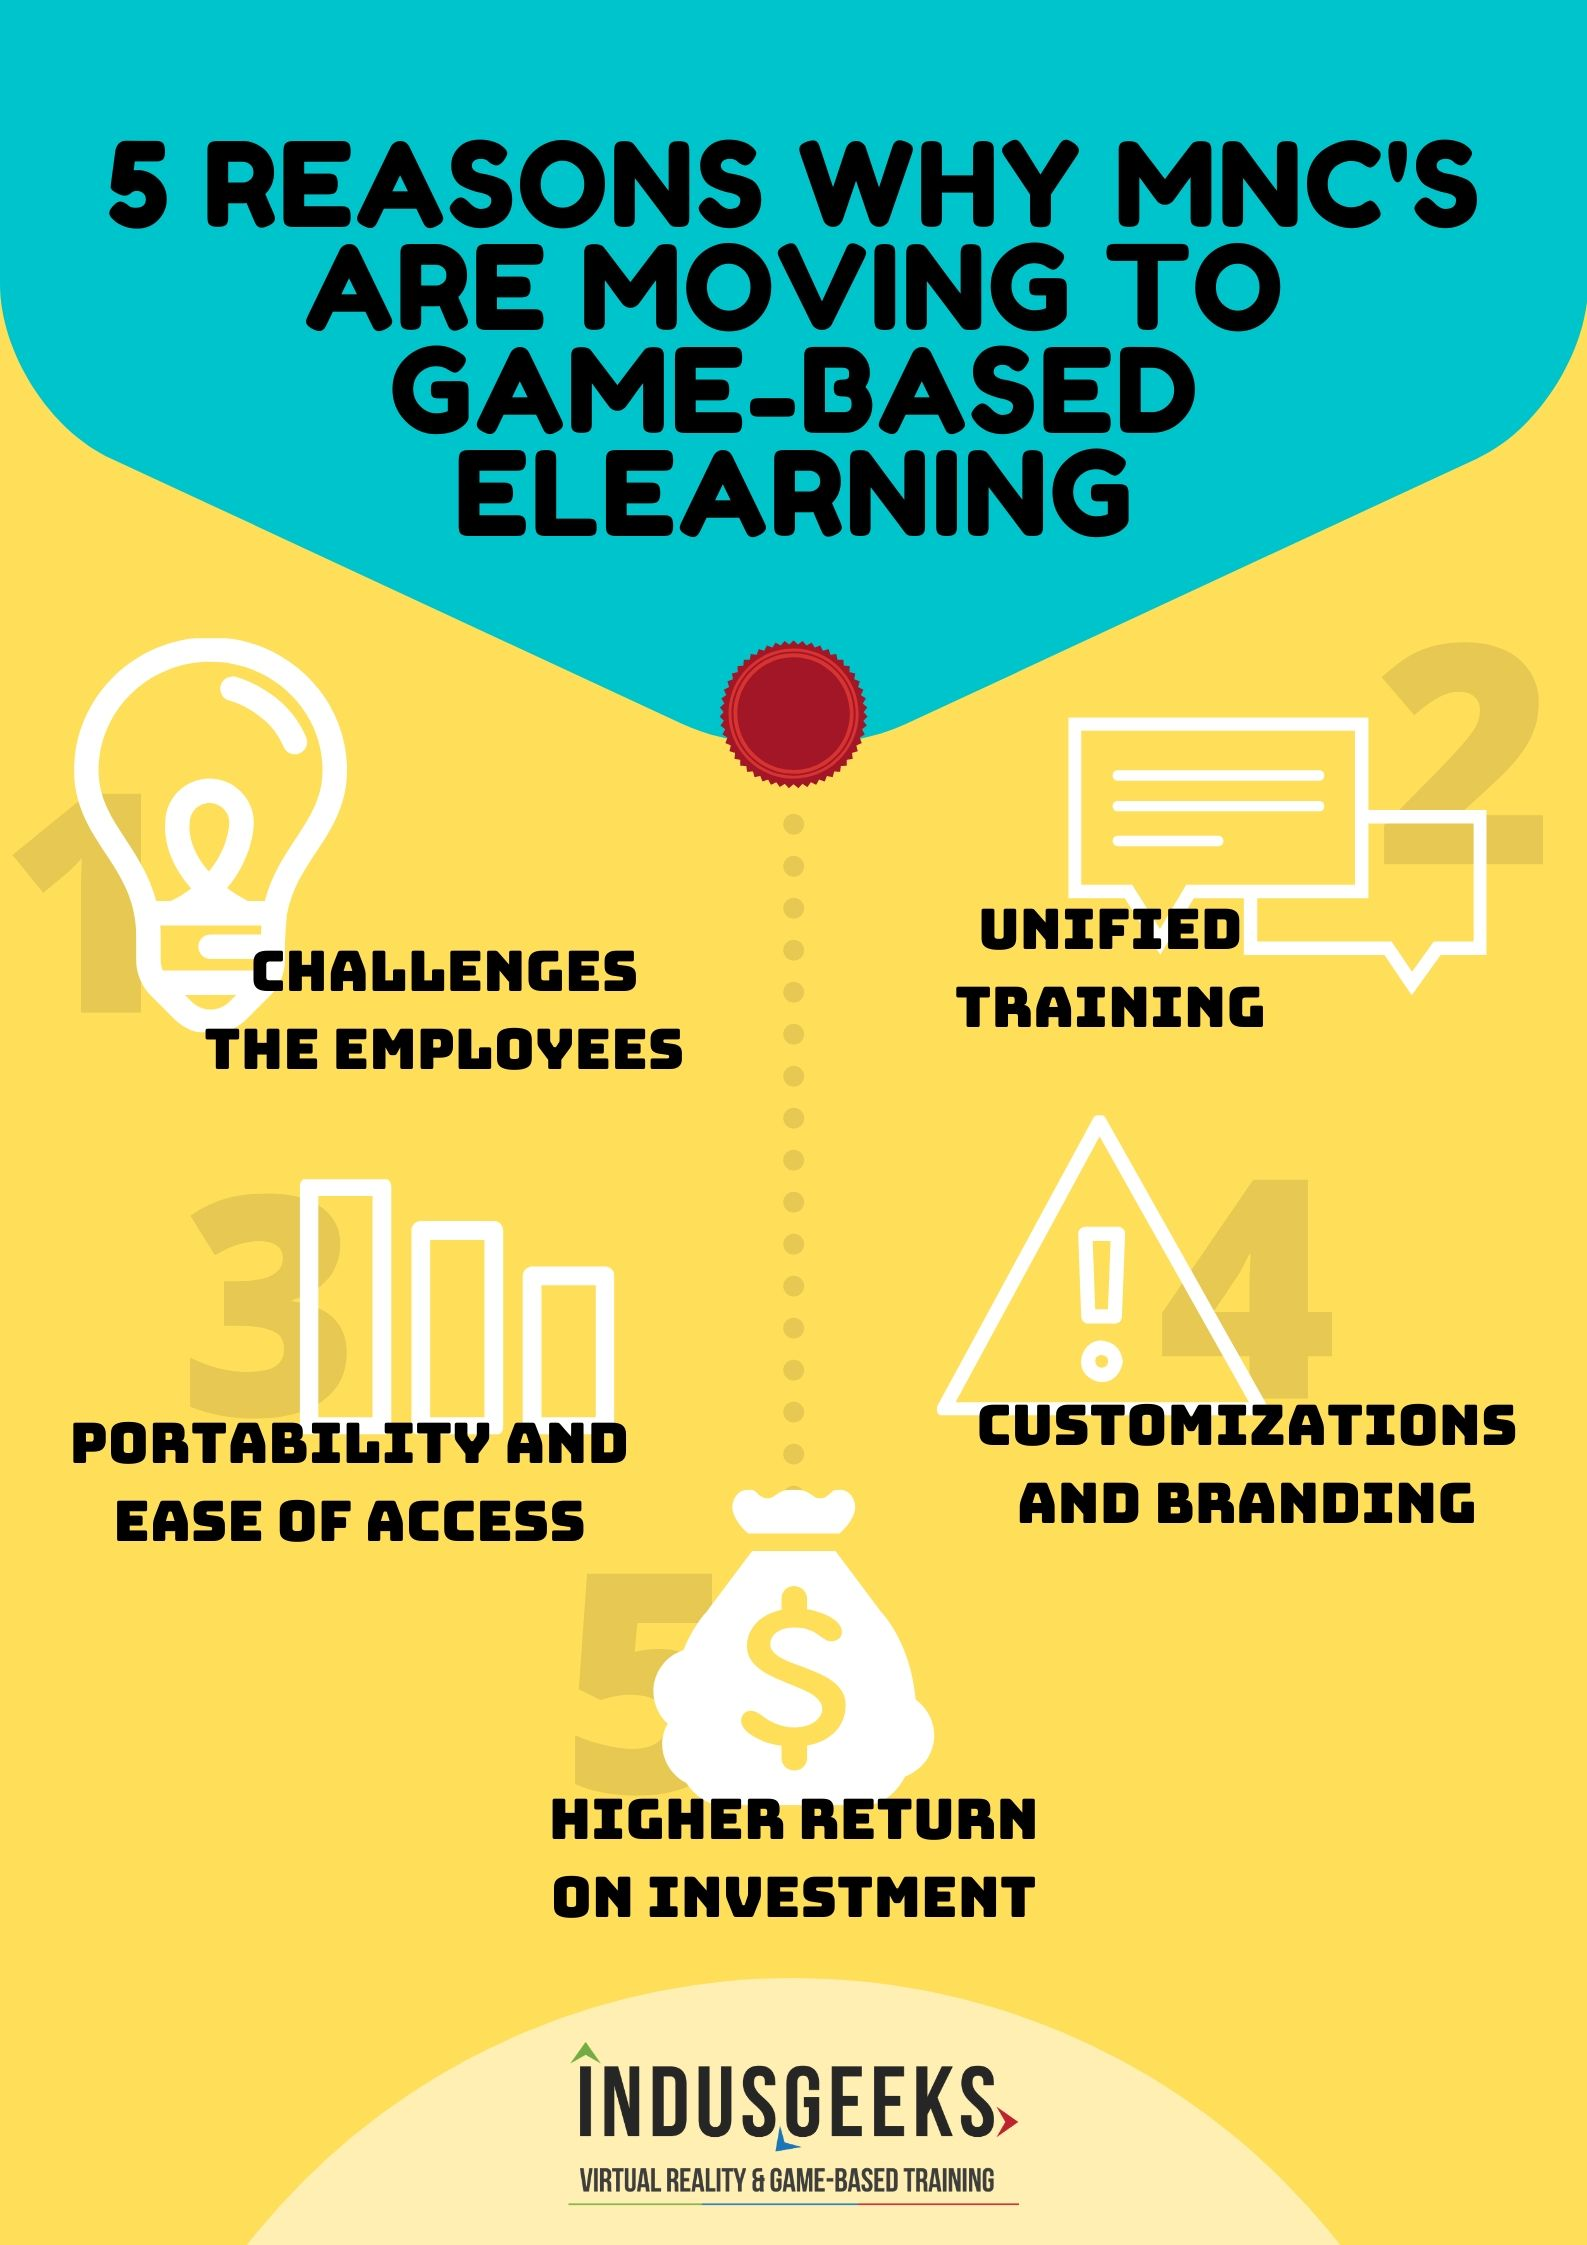 Game-based eLearning in MNC